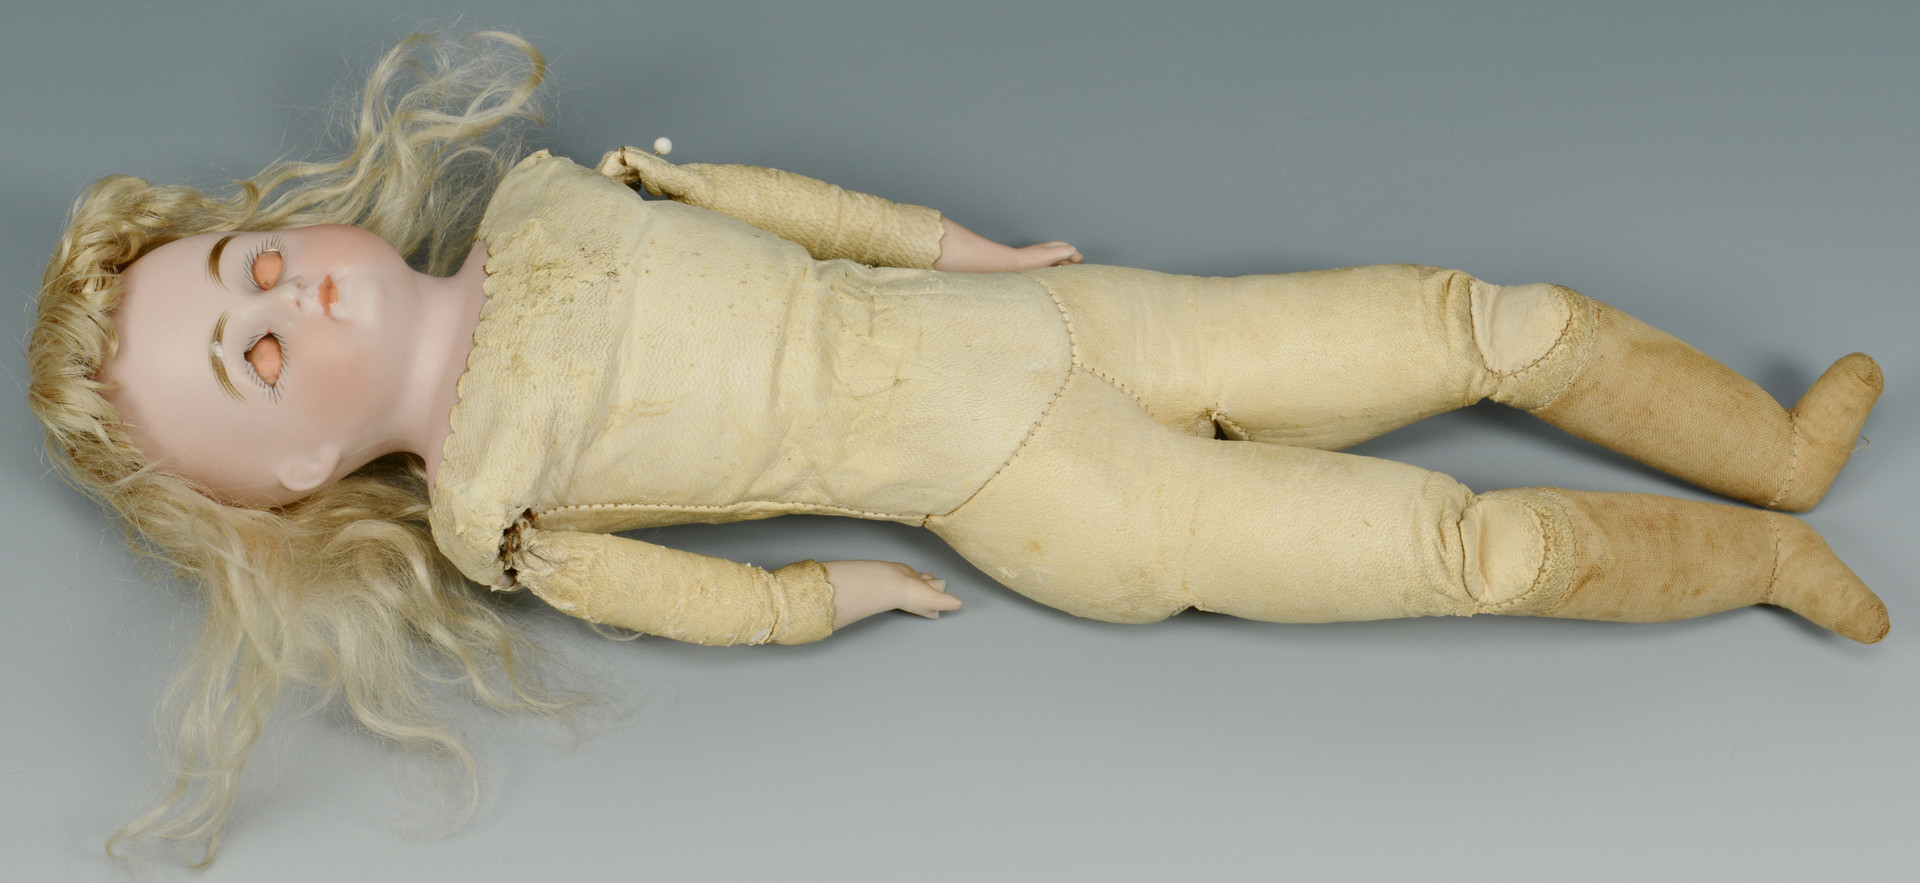 Lot 906: Grouping of Kestner & Byelo Doll Items